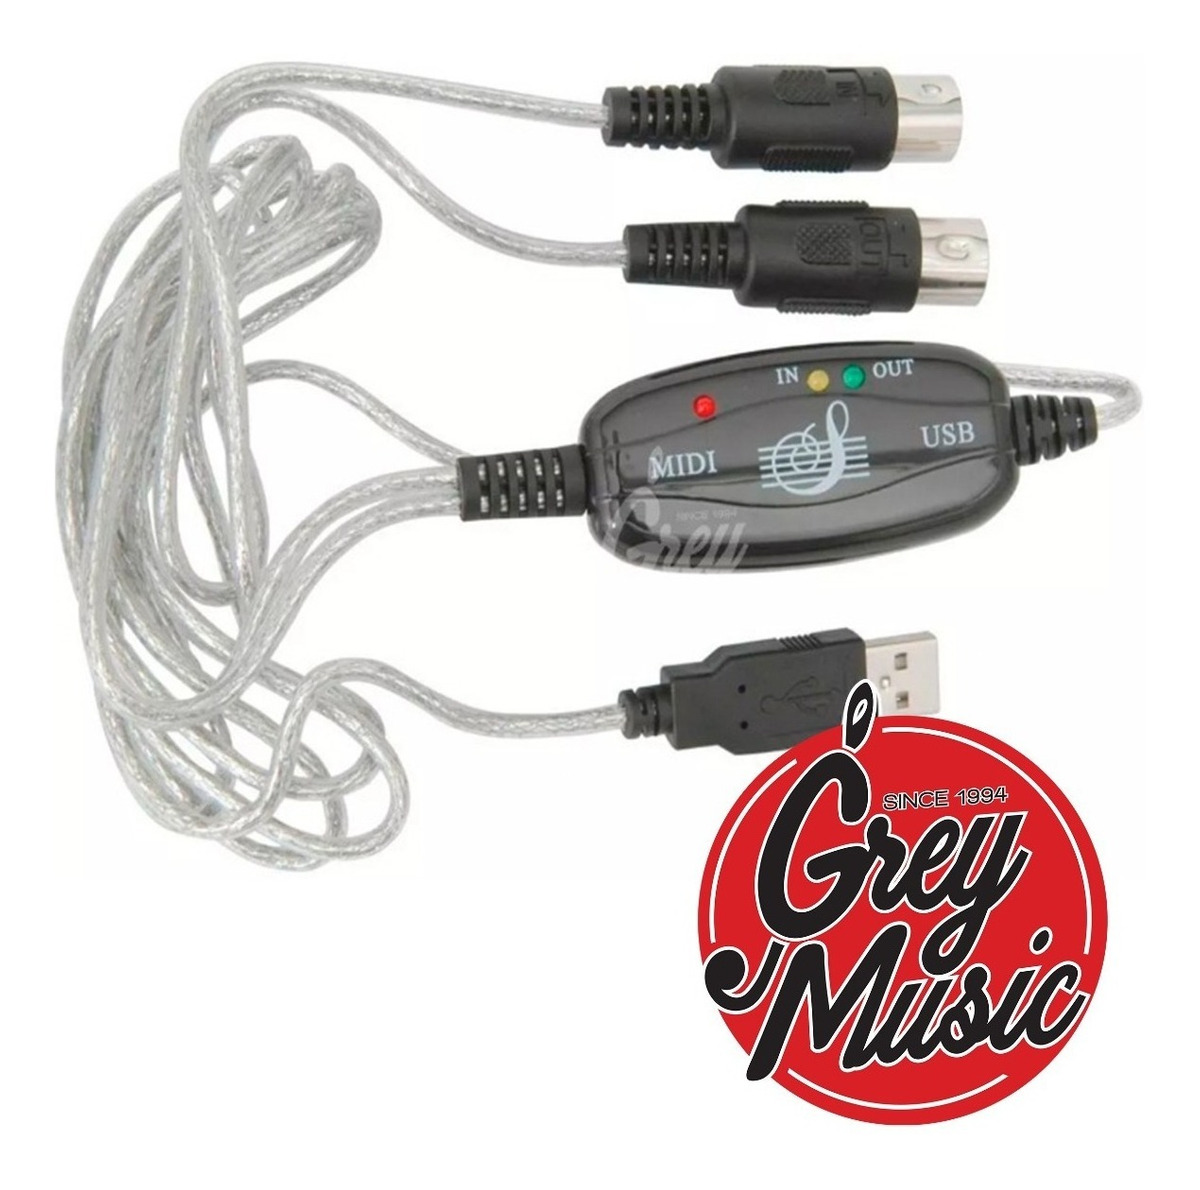 Cable Midi A Usb Teclados Pianos Batería Pc Mac Interface